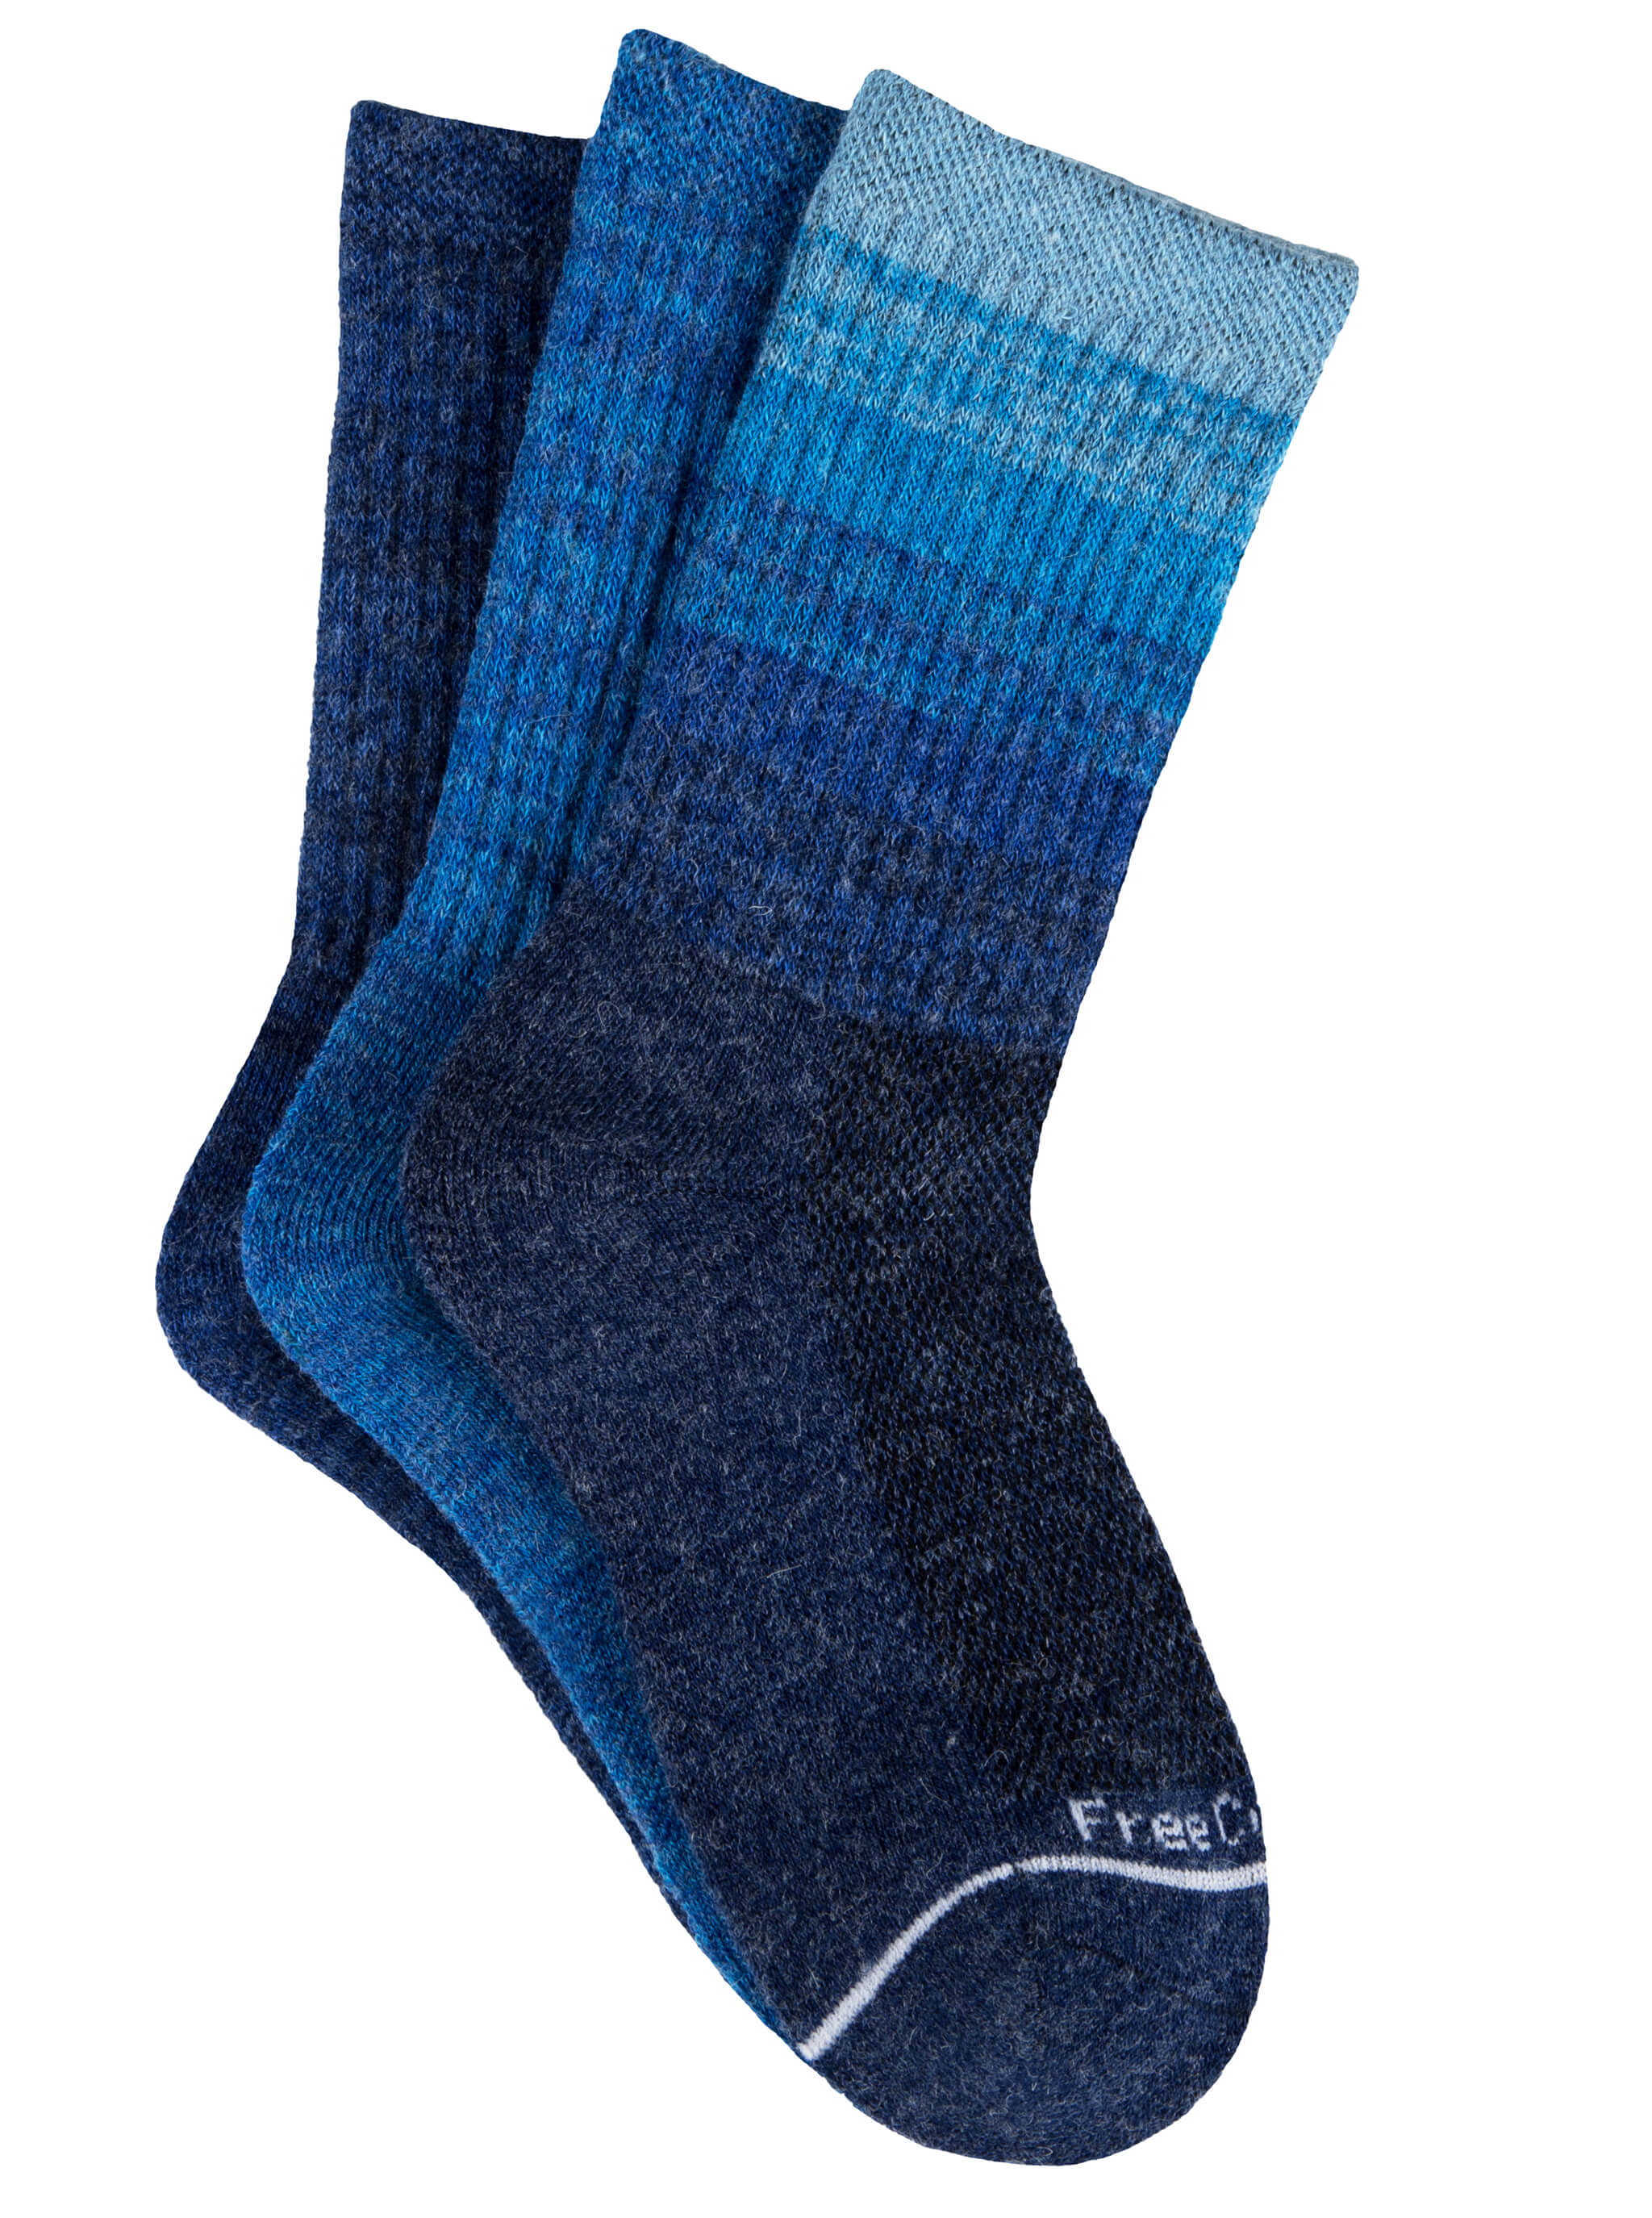 Girls' Wool-Blend Colorblock Ombre Crew Socks